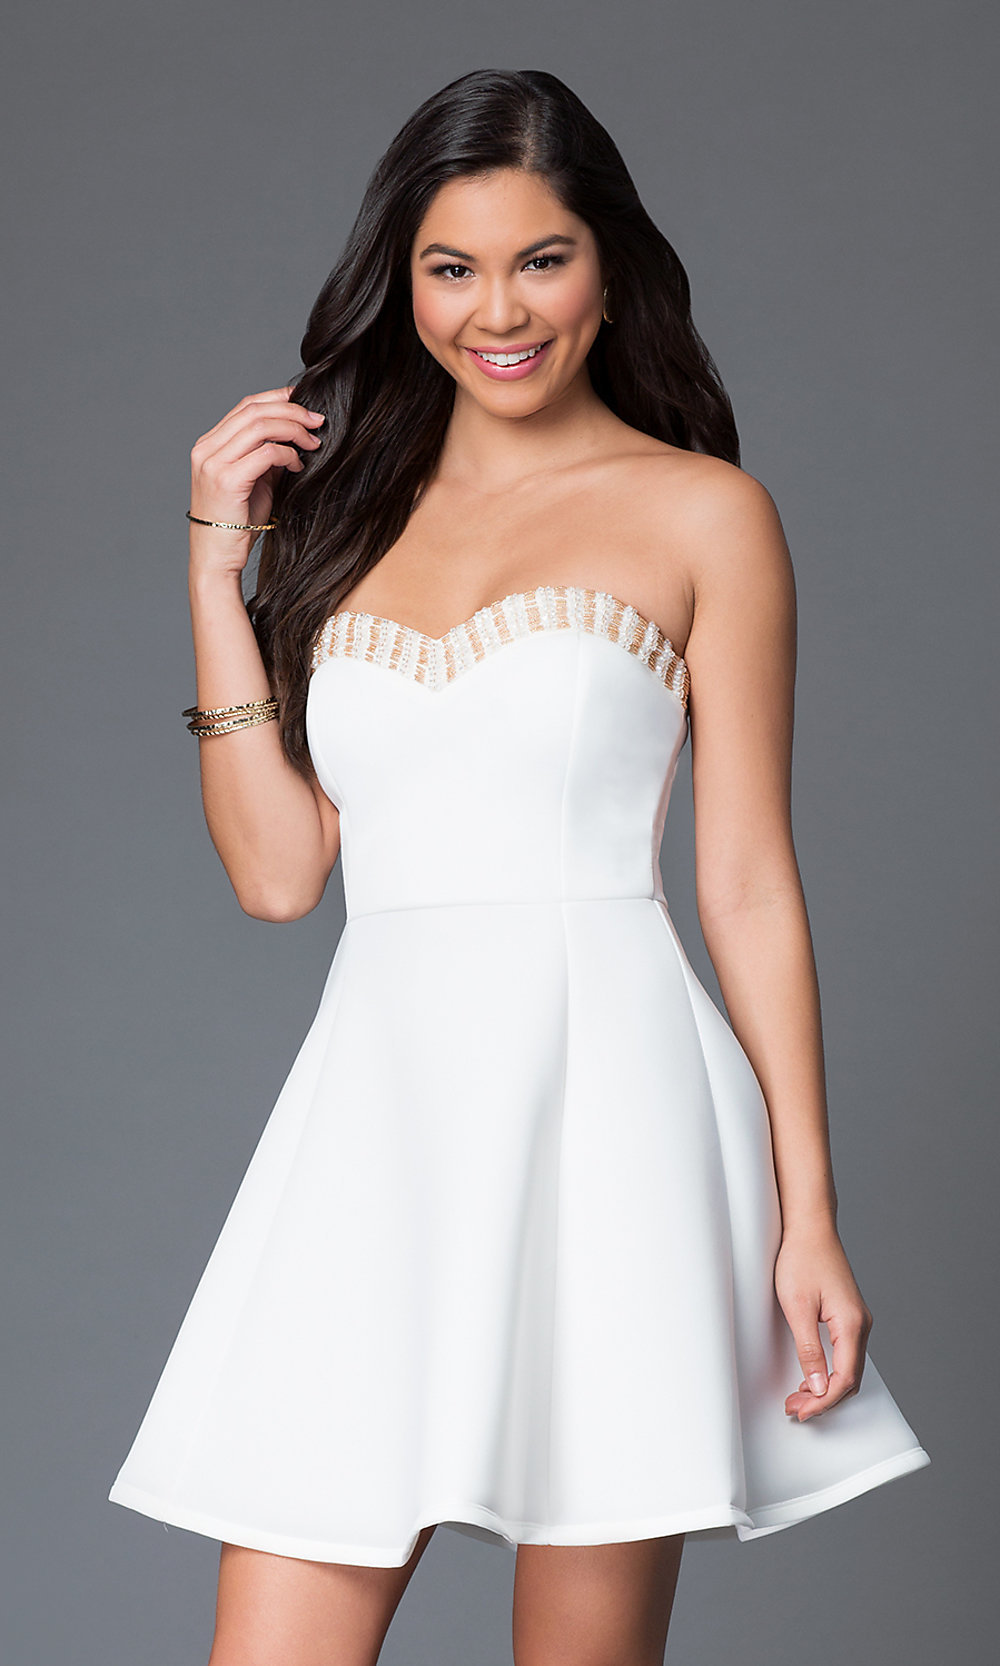 Cheap Strapless-Sweetheart Short Party Dress -PromGirl